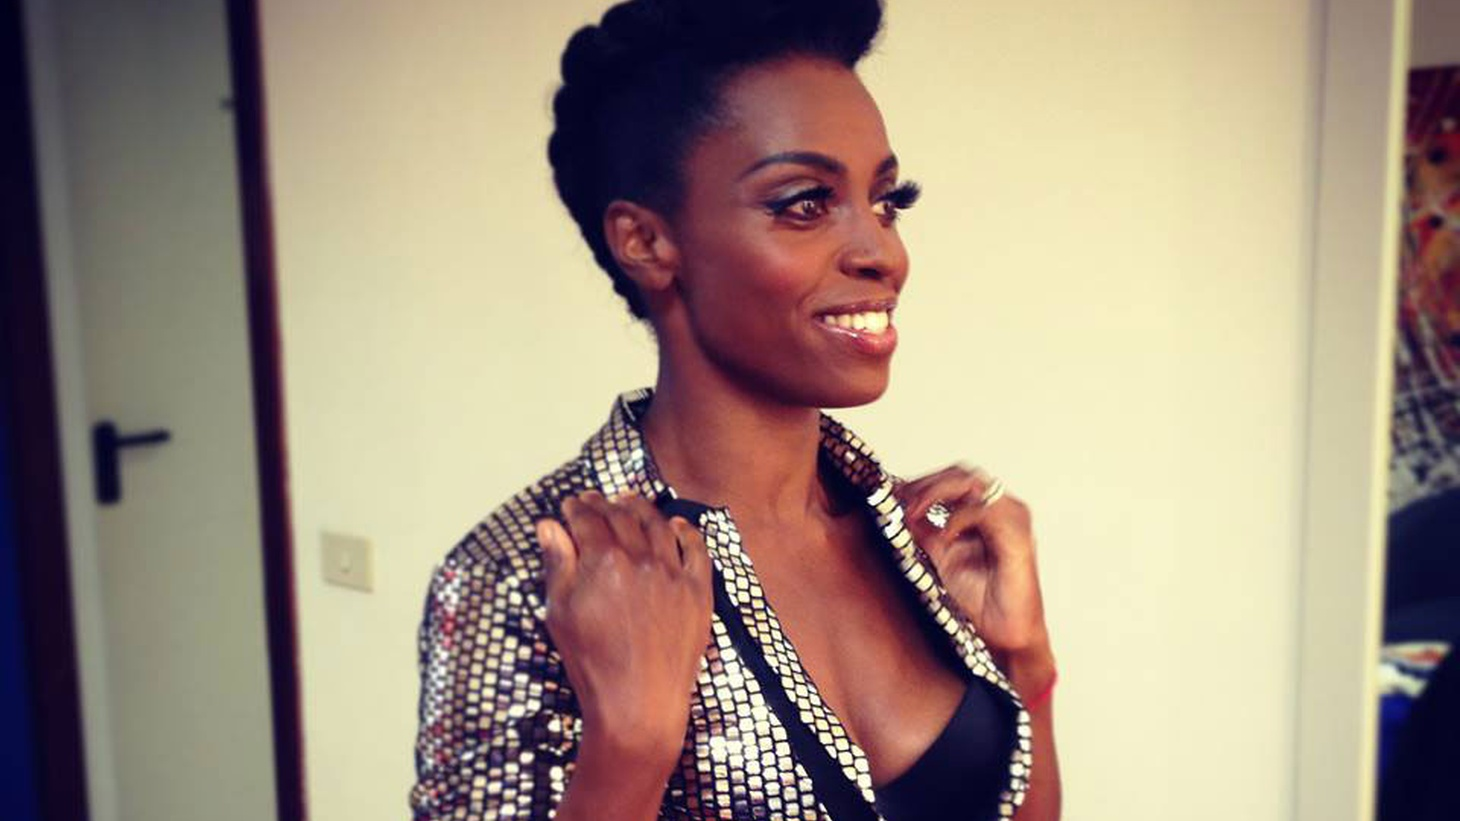 Skye is the sublime singer for UK trip-hop heroes Morcheeba and performed songs from her stirring solo work on Morning Becomes Eclectic.